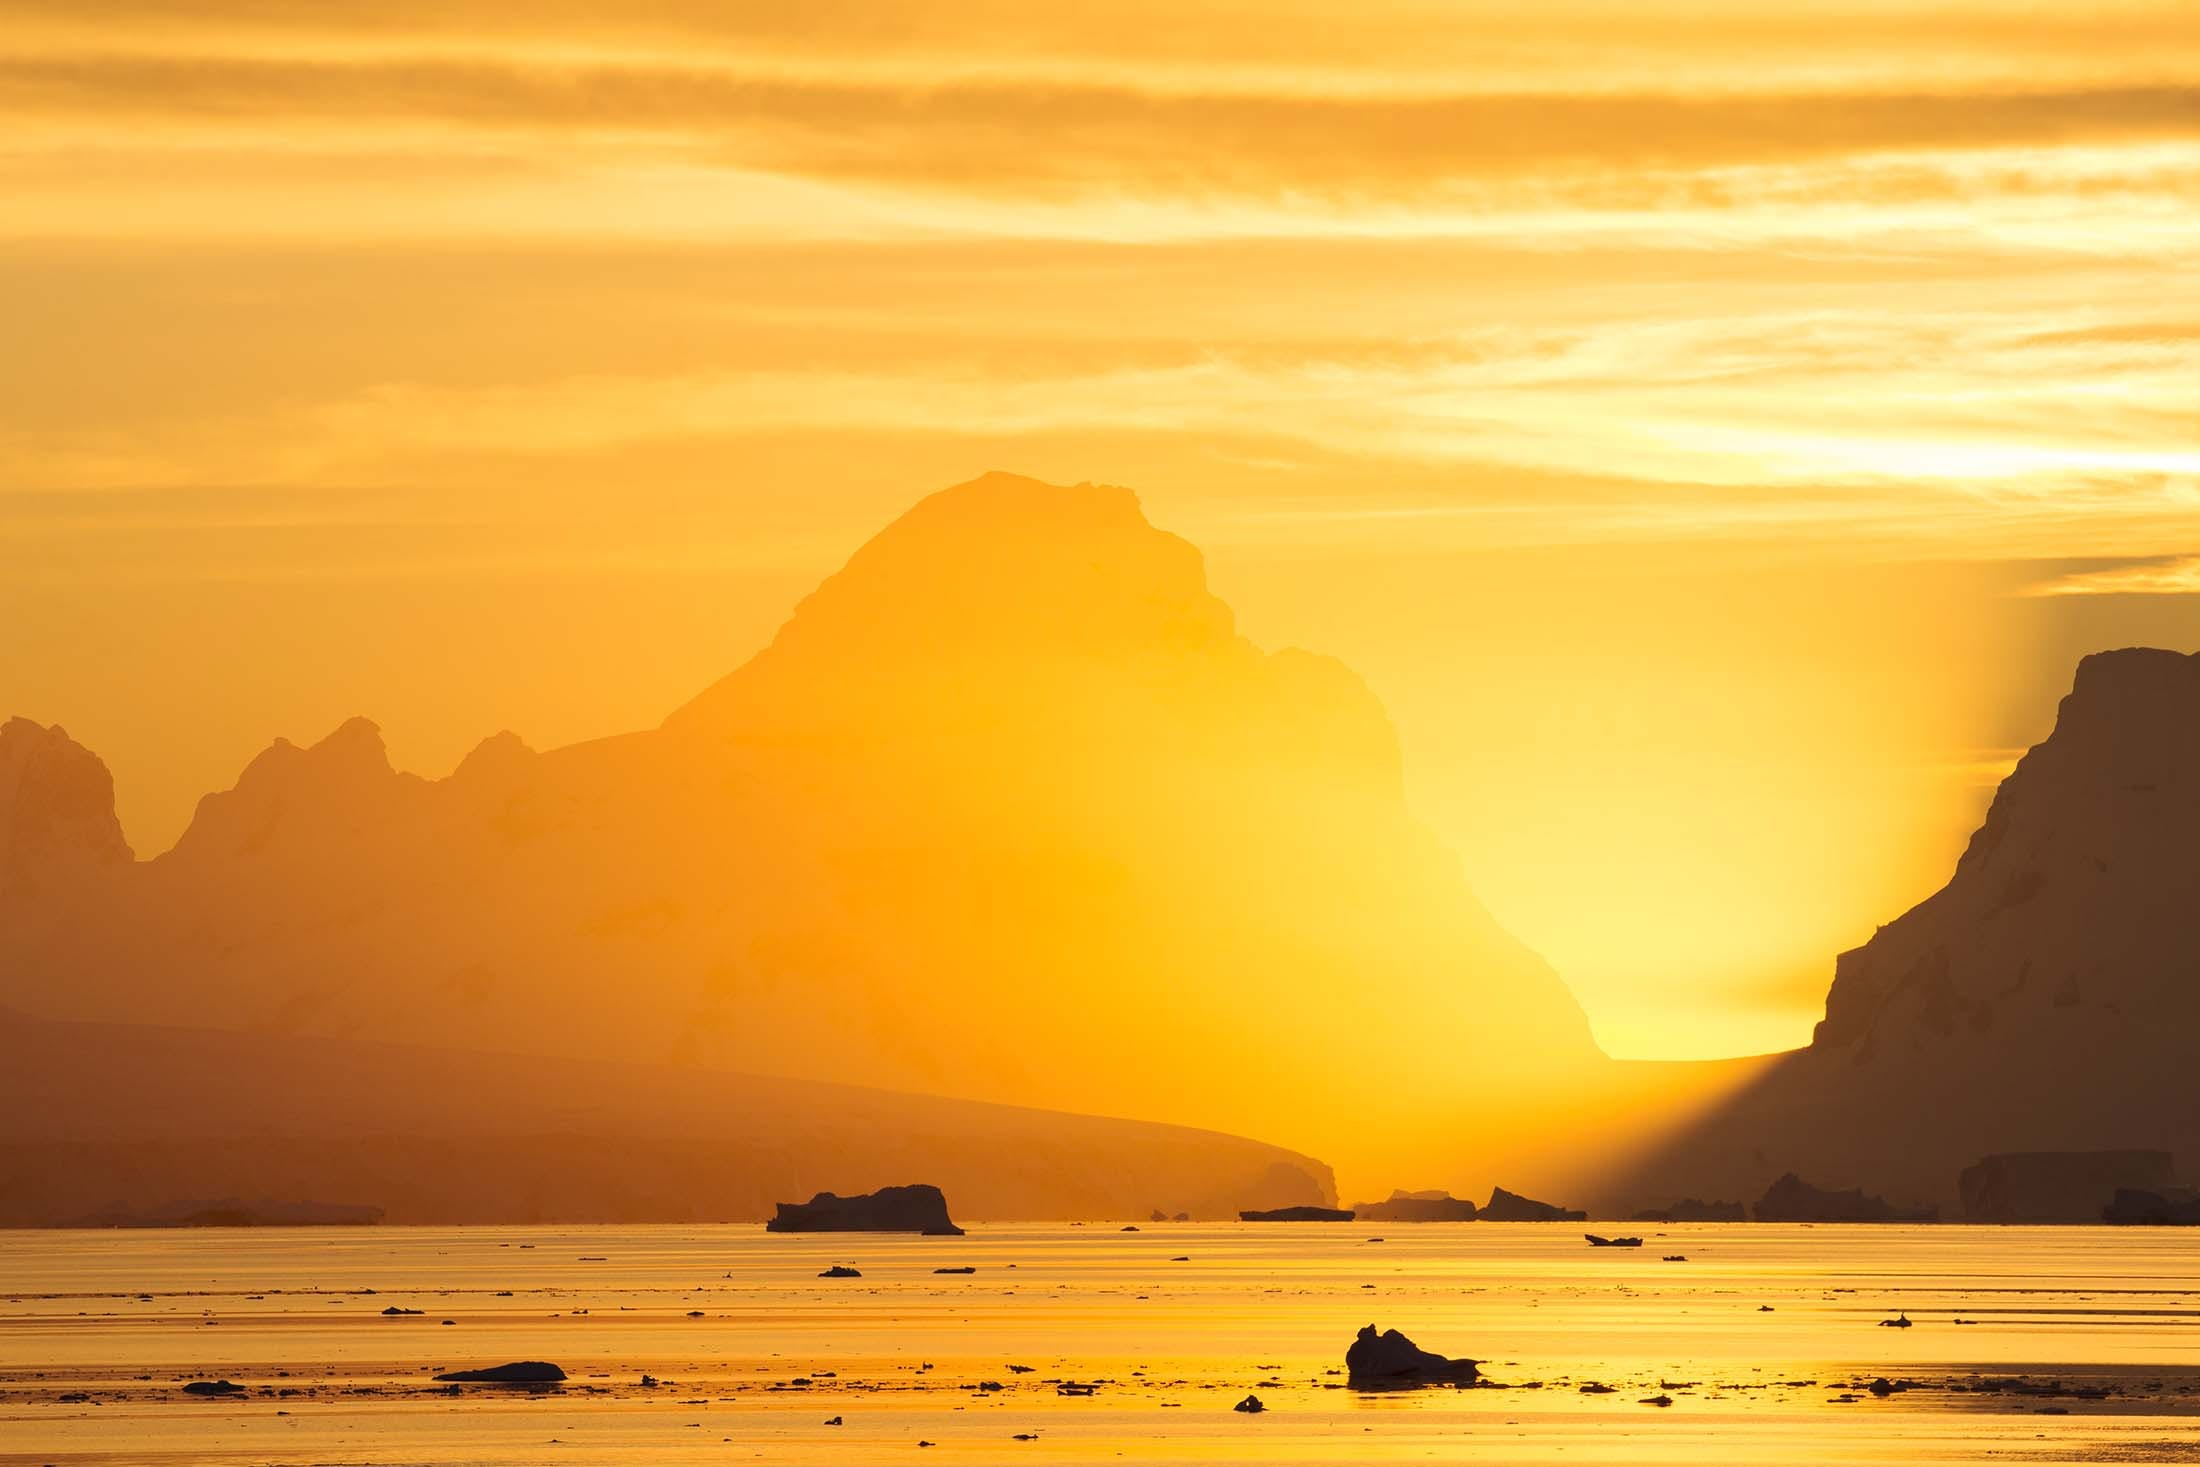 Sunset over the Errera_Channel, near Ronge Island in Antarctica